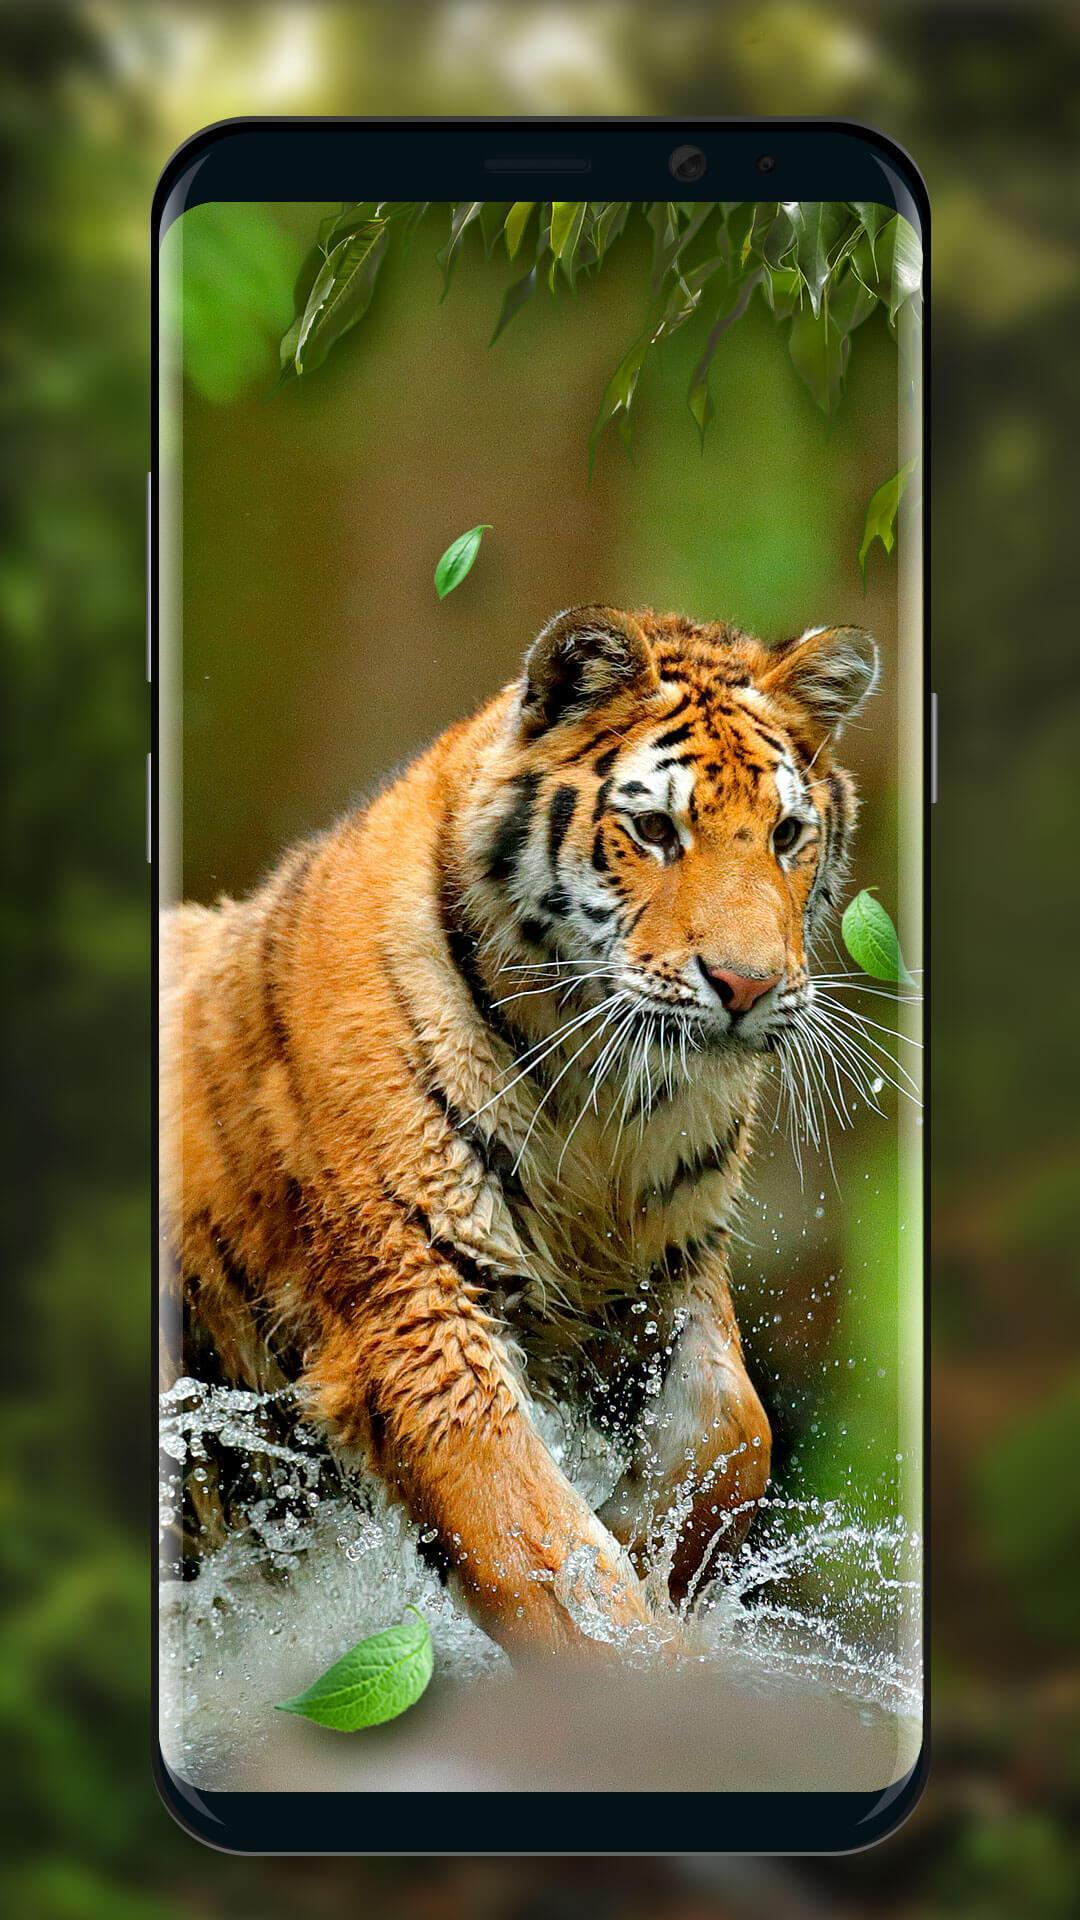 Moving Tiger Live Wallpaper For Android Apk Download